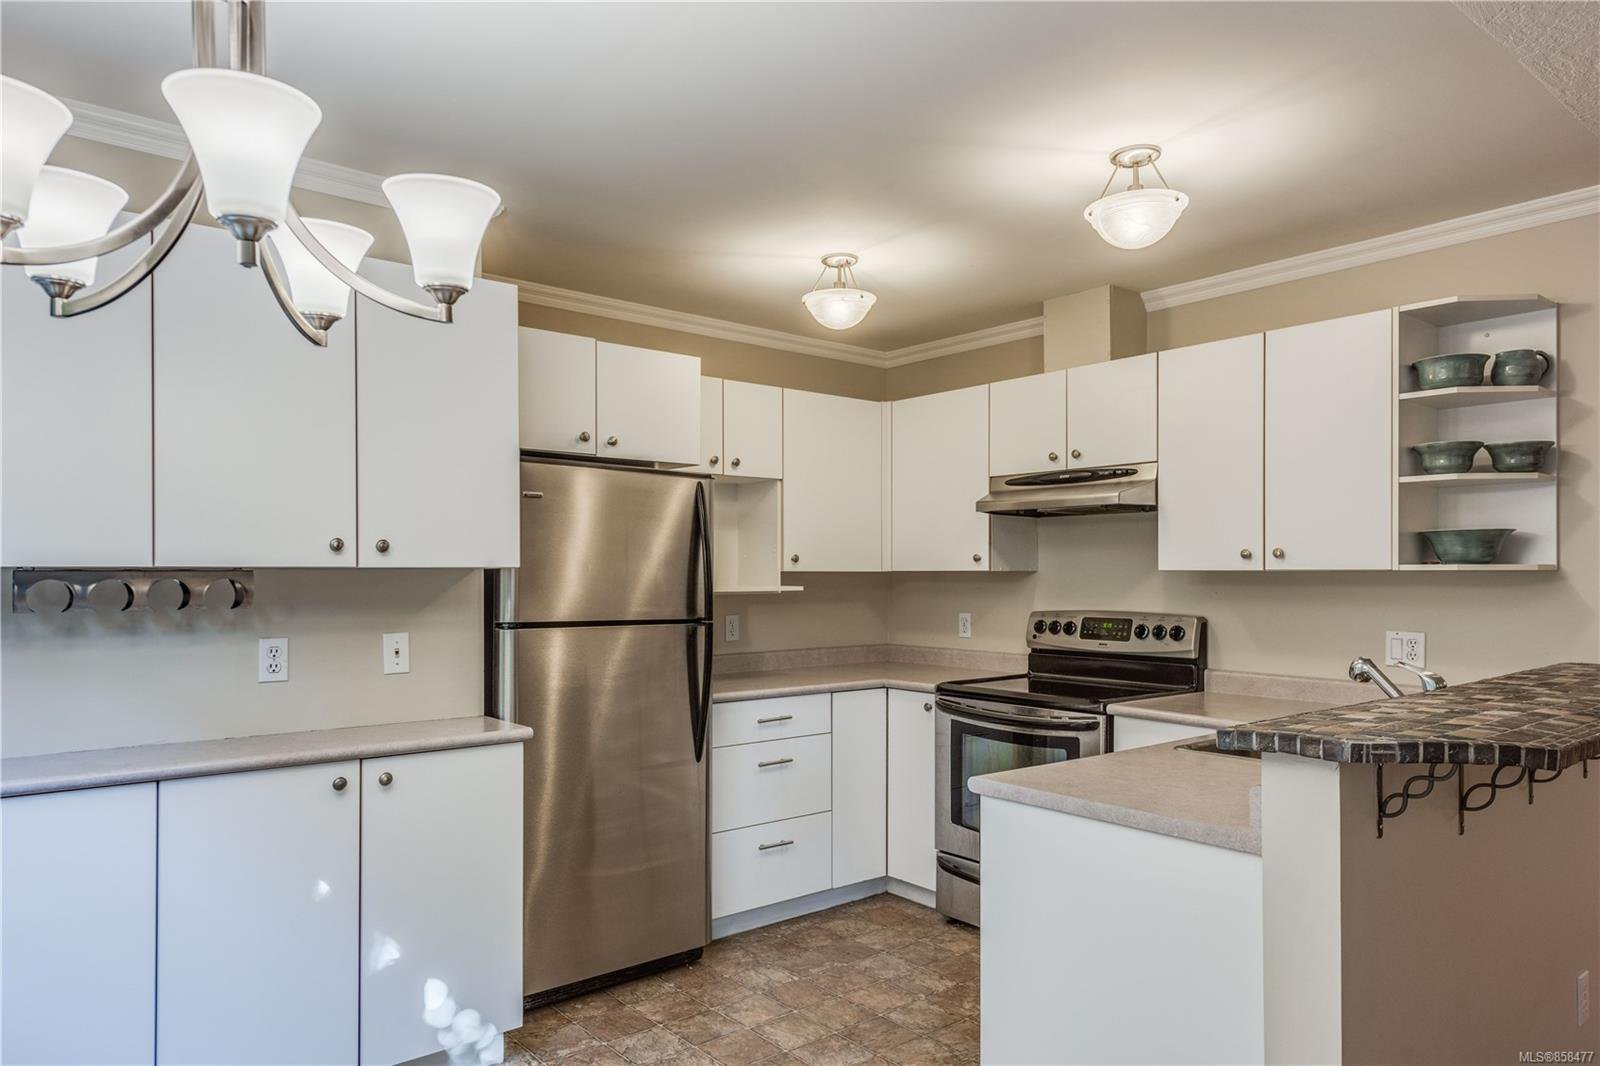 Main Photo: 102 1025 Meares St in : Vi Downtown Condo for sale (Victoria)  : MLS®# 858477